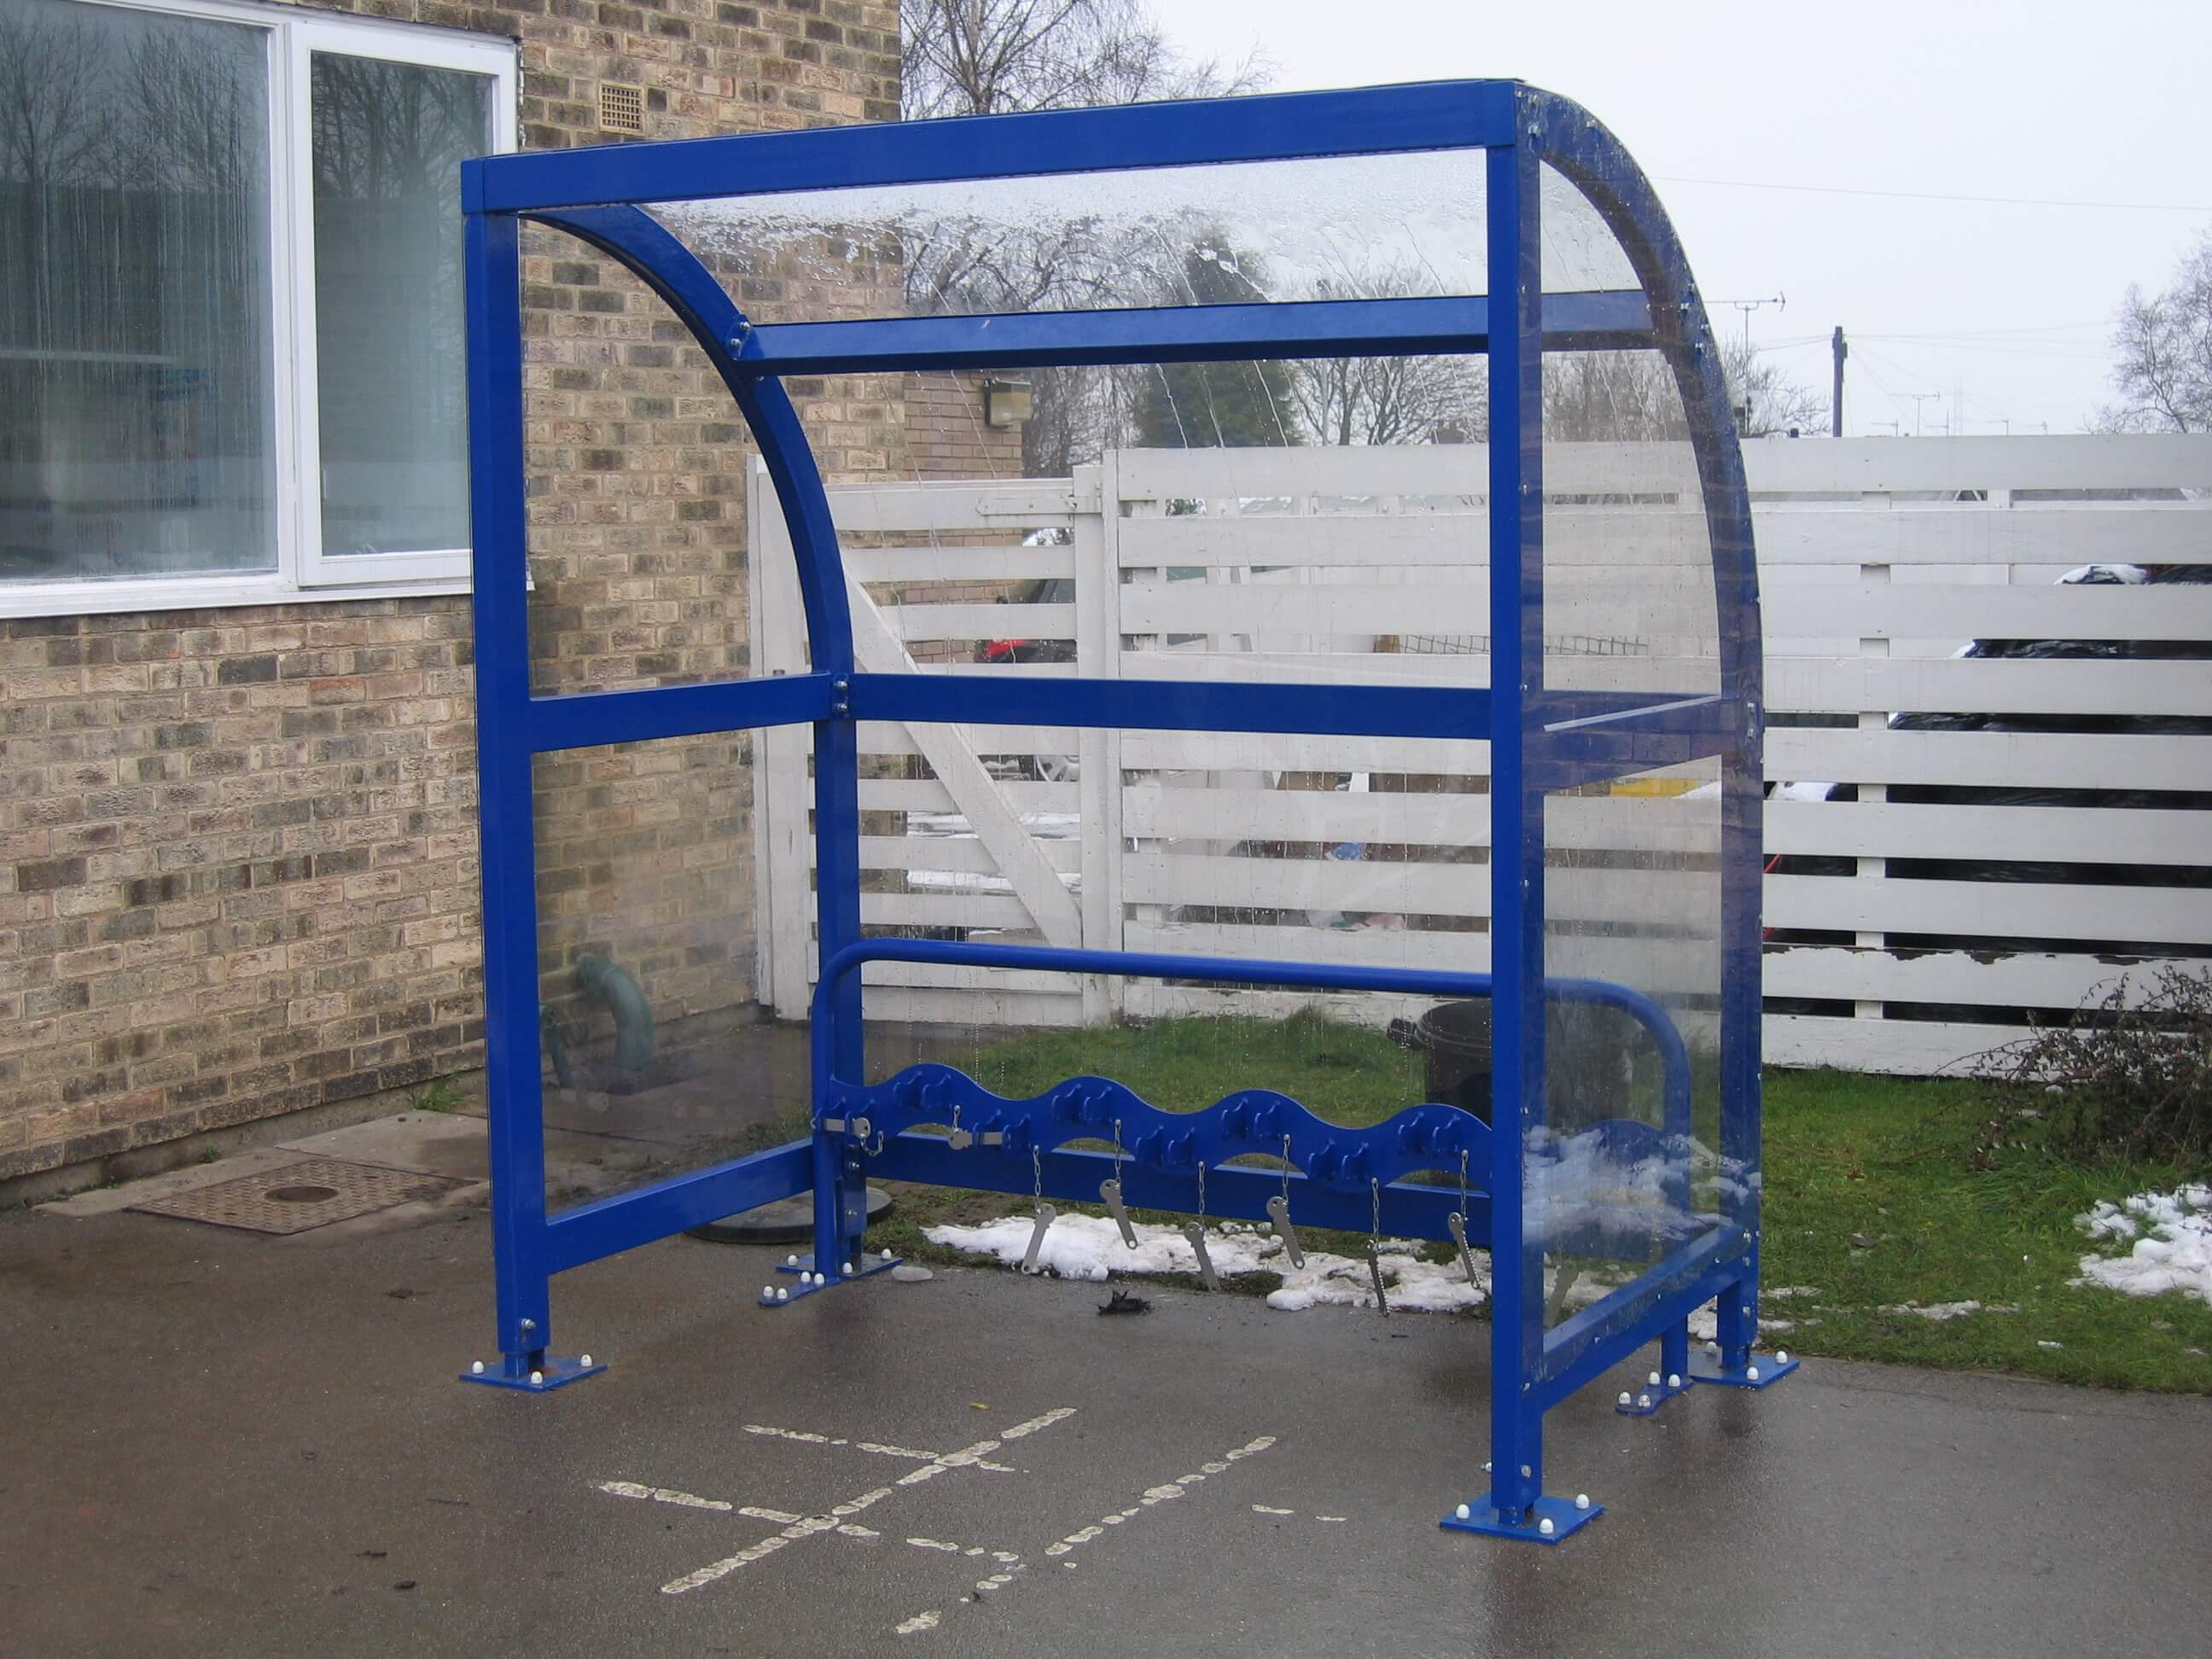 Scooter Rack with Shelter